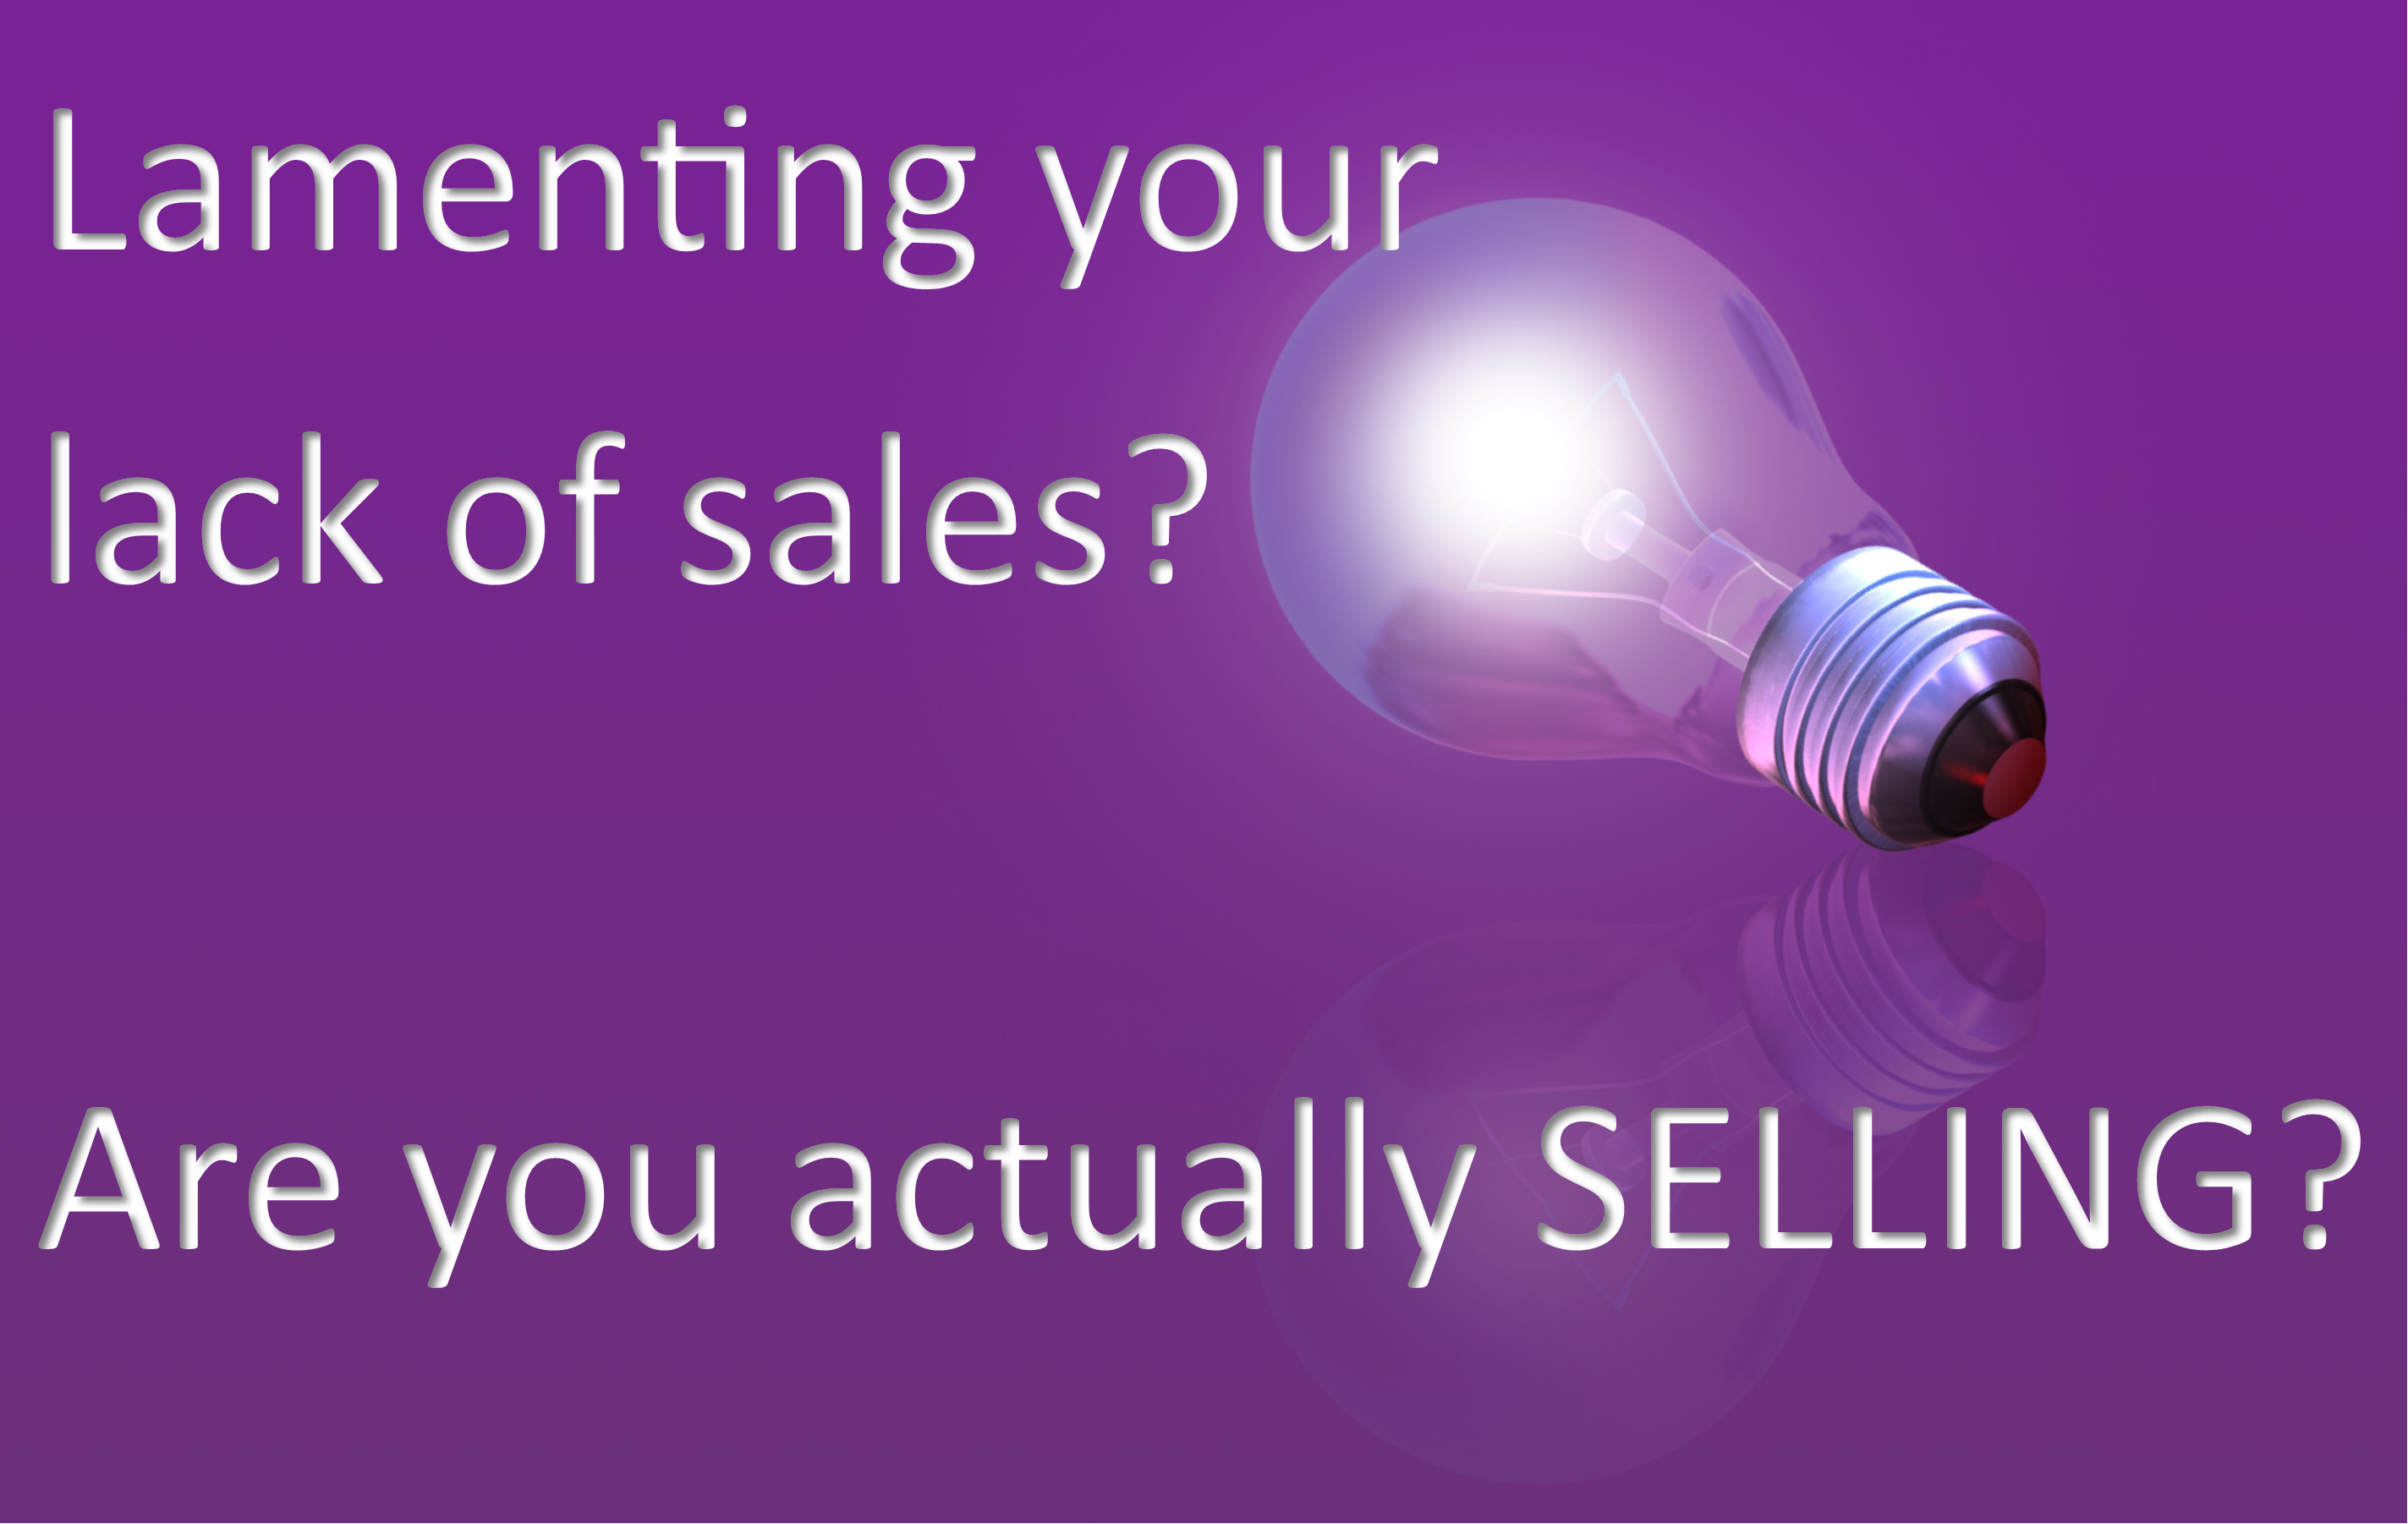 Are you actually SELLING?